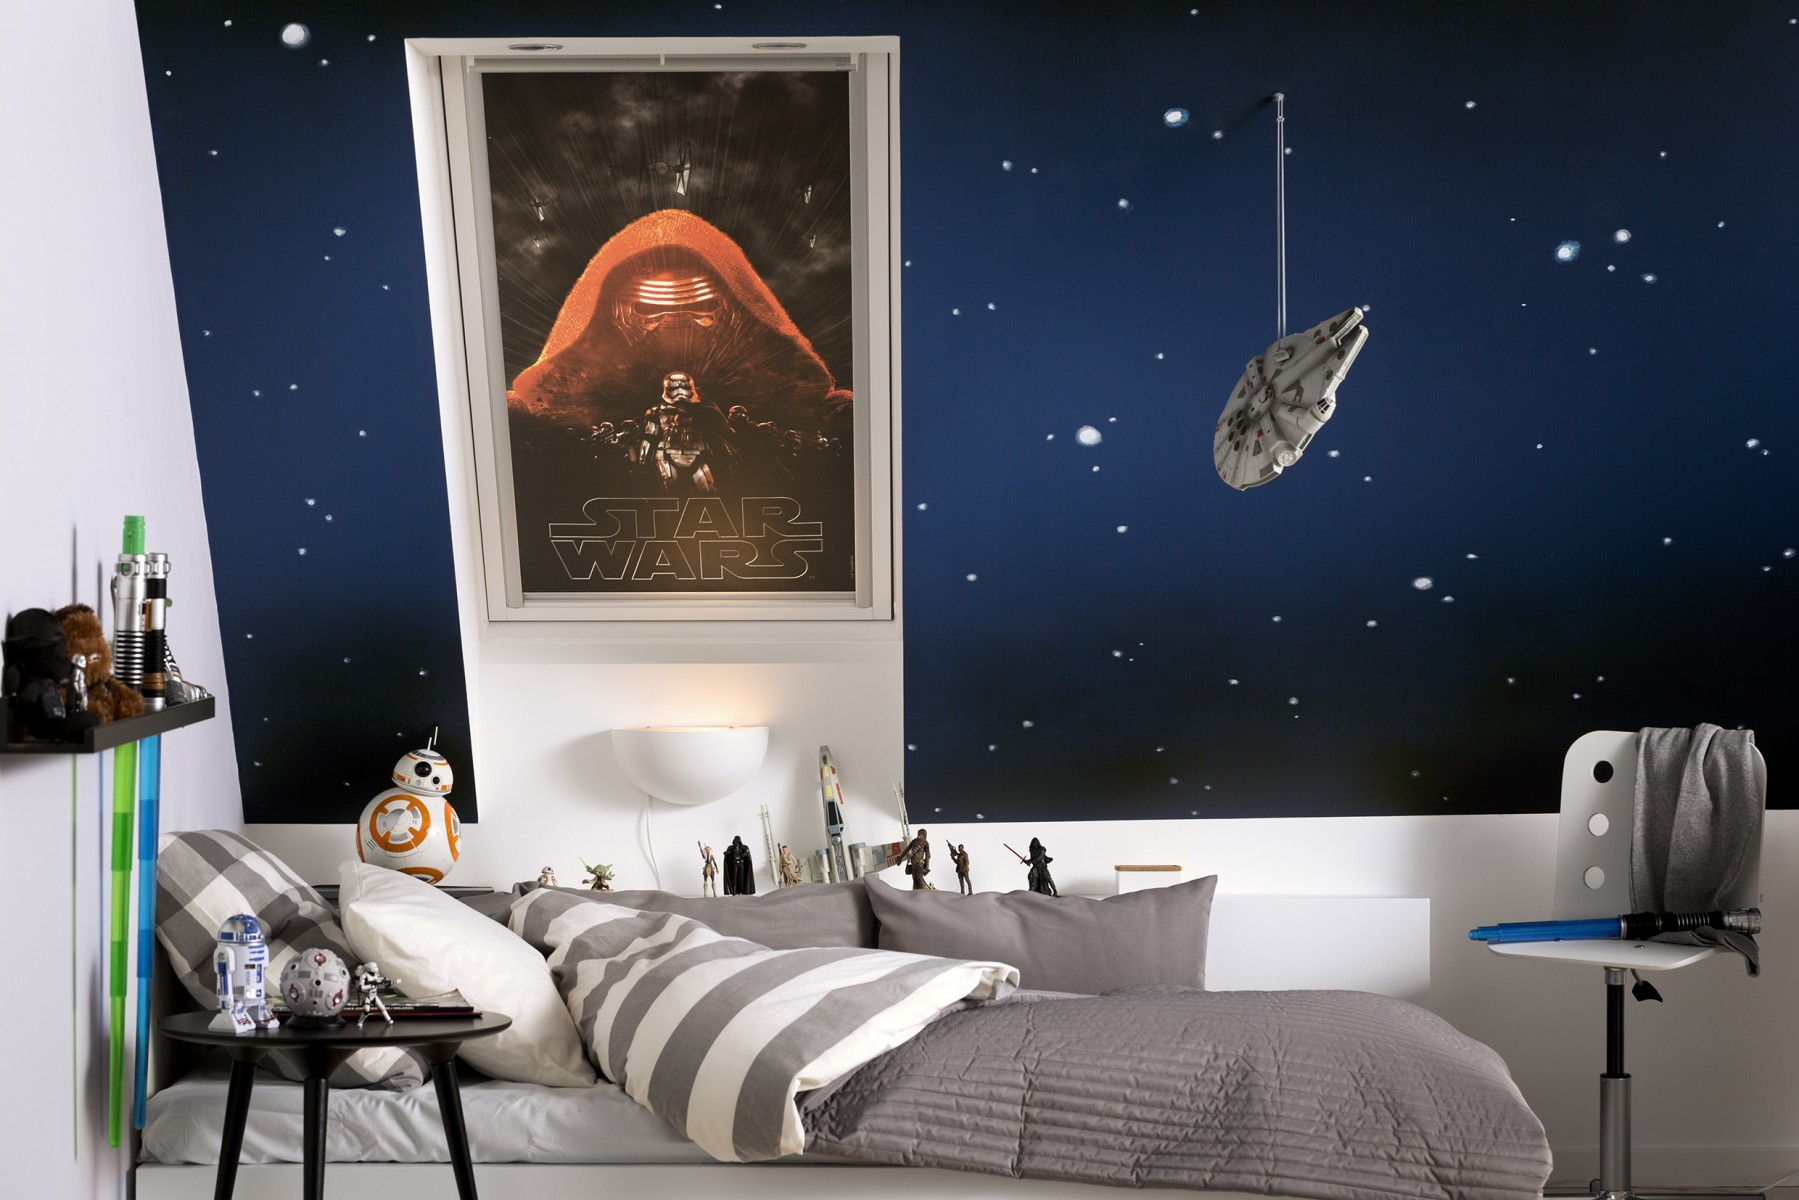 star wars room decor velux gruppen og disney sammen om ny wars kollektion 11216